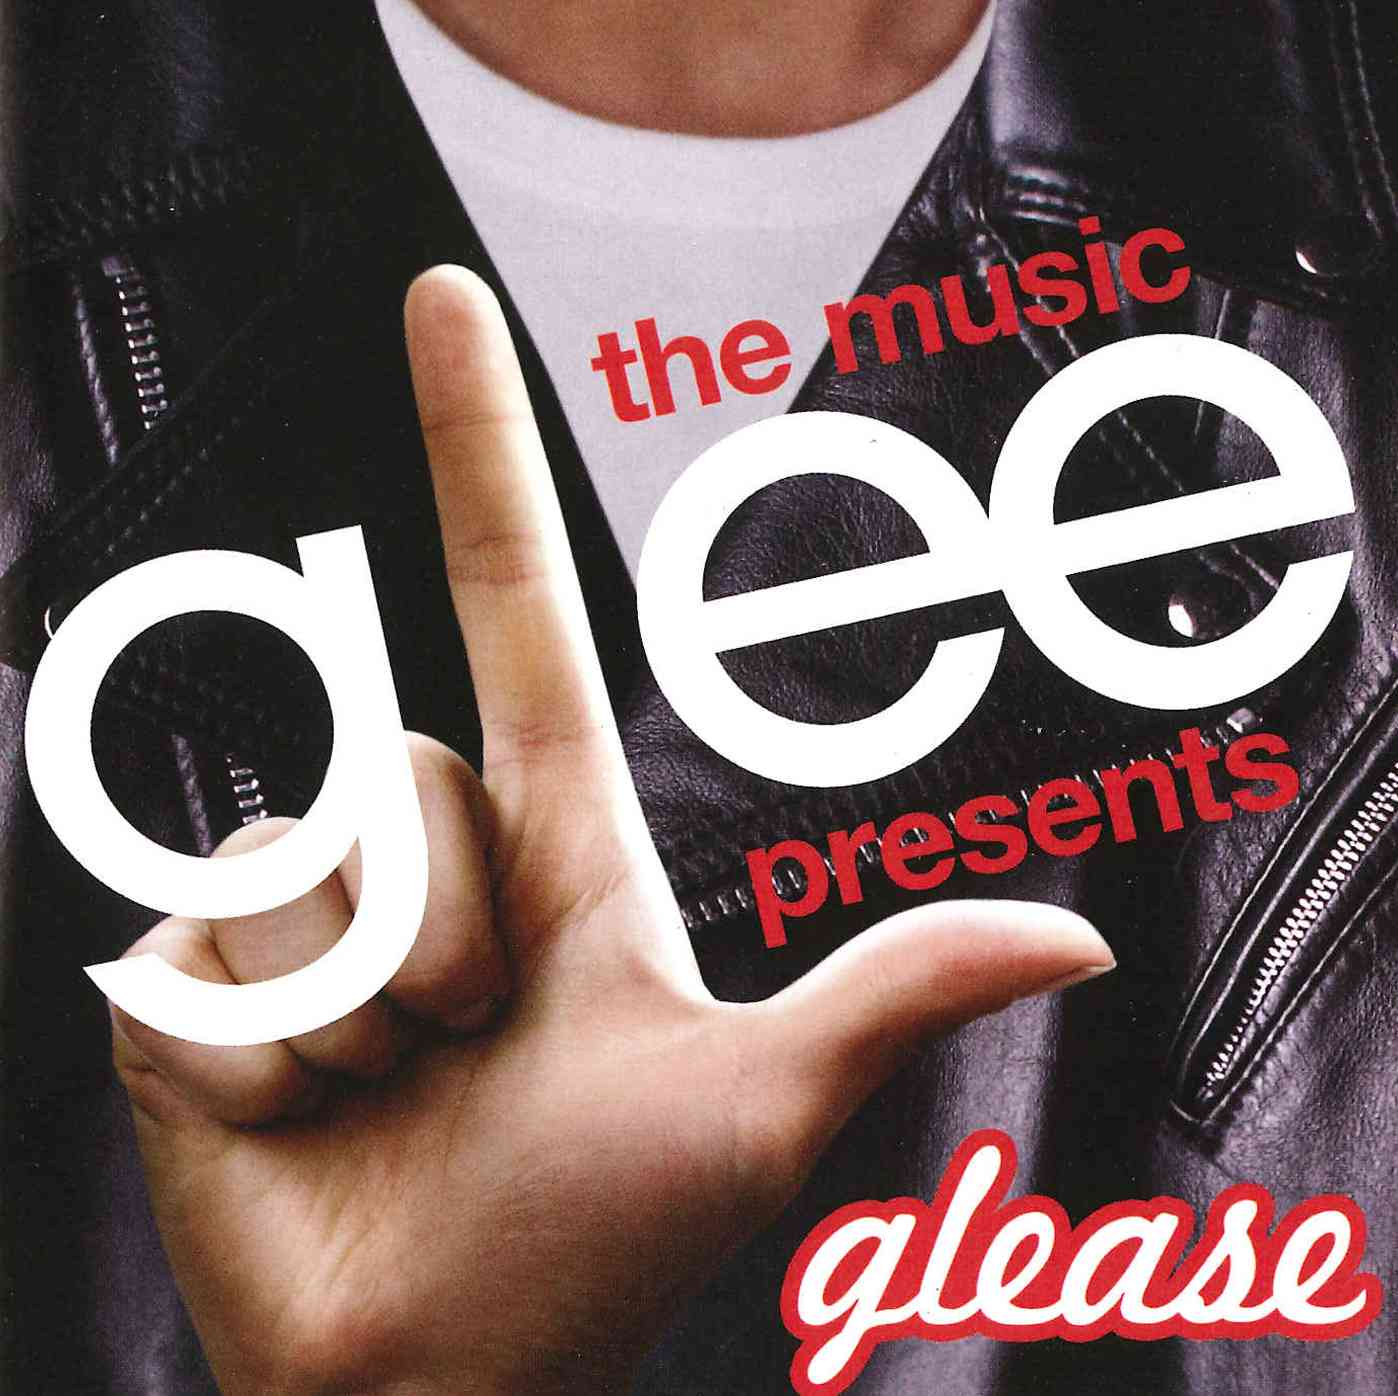 Glee Cast - Glee: The Music Presents Glease (OST)